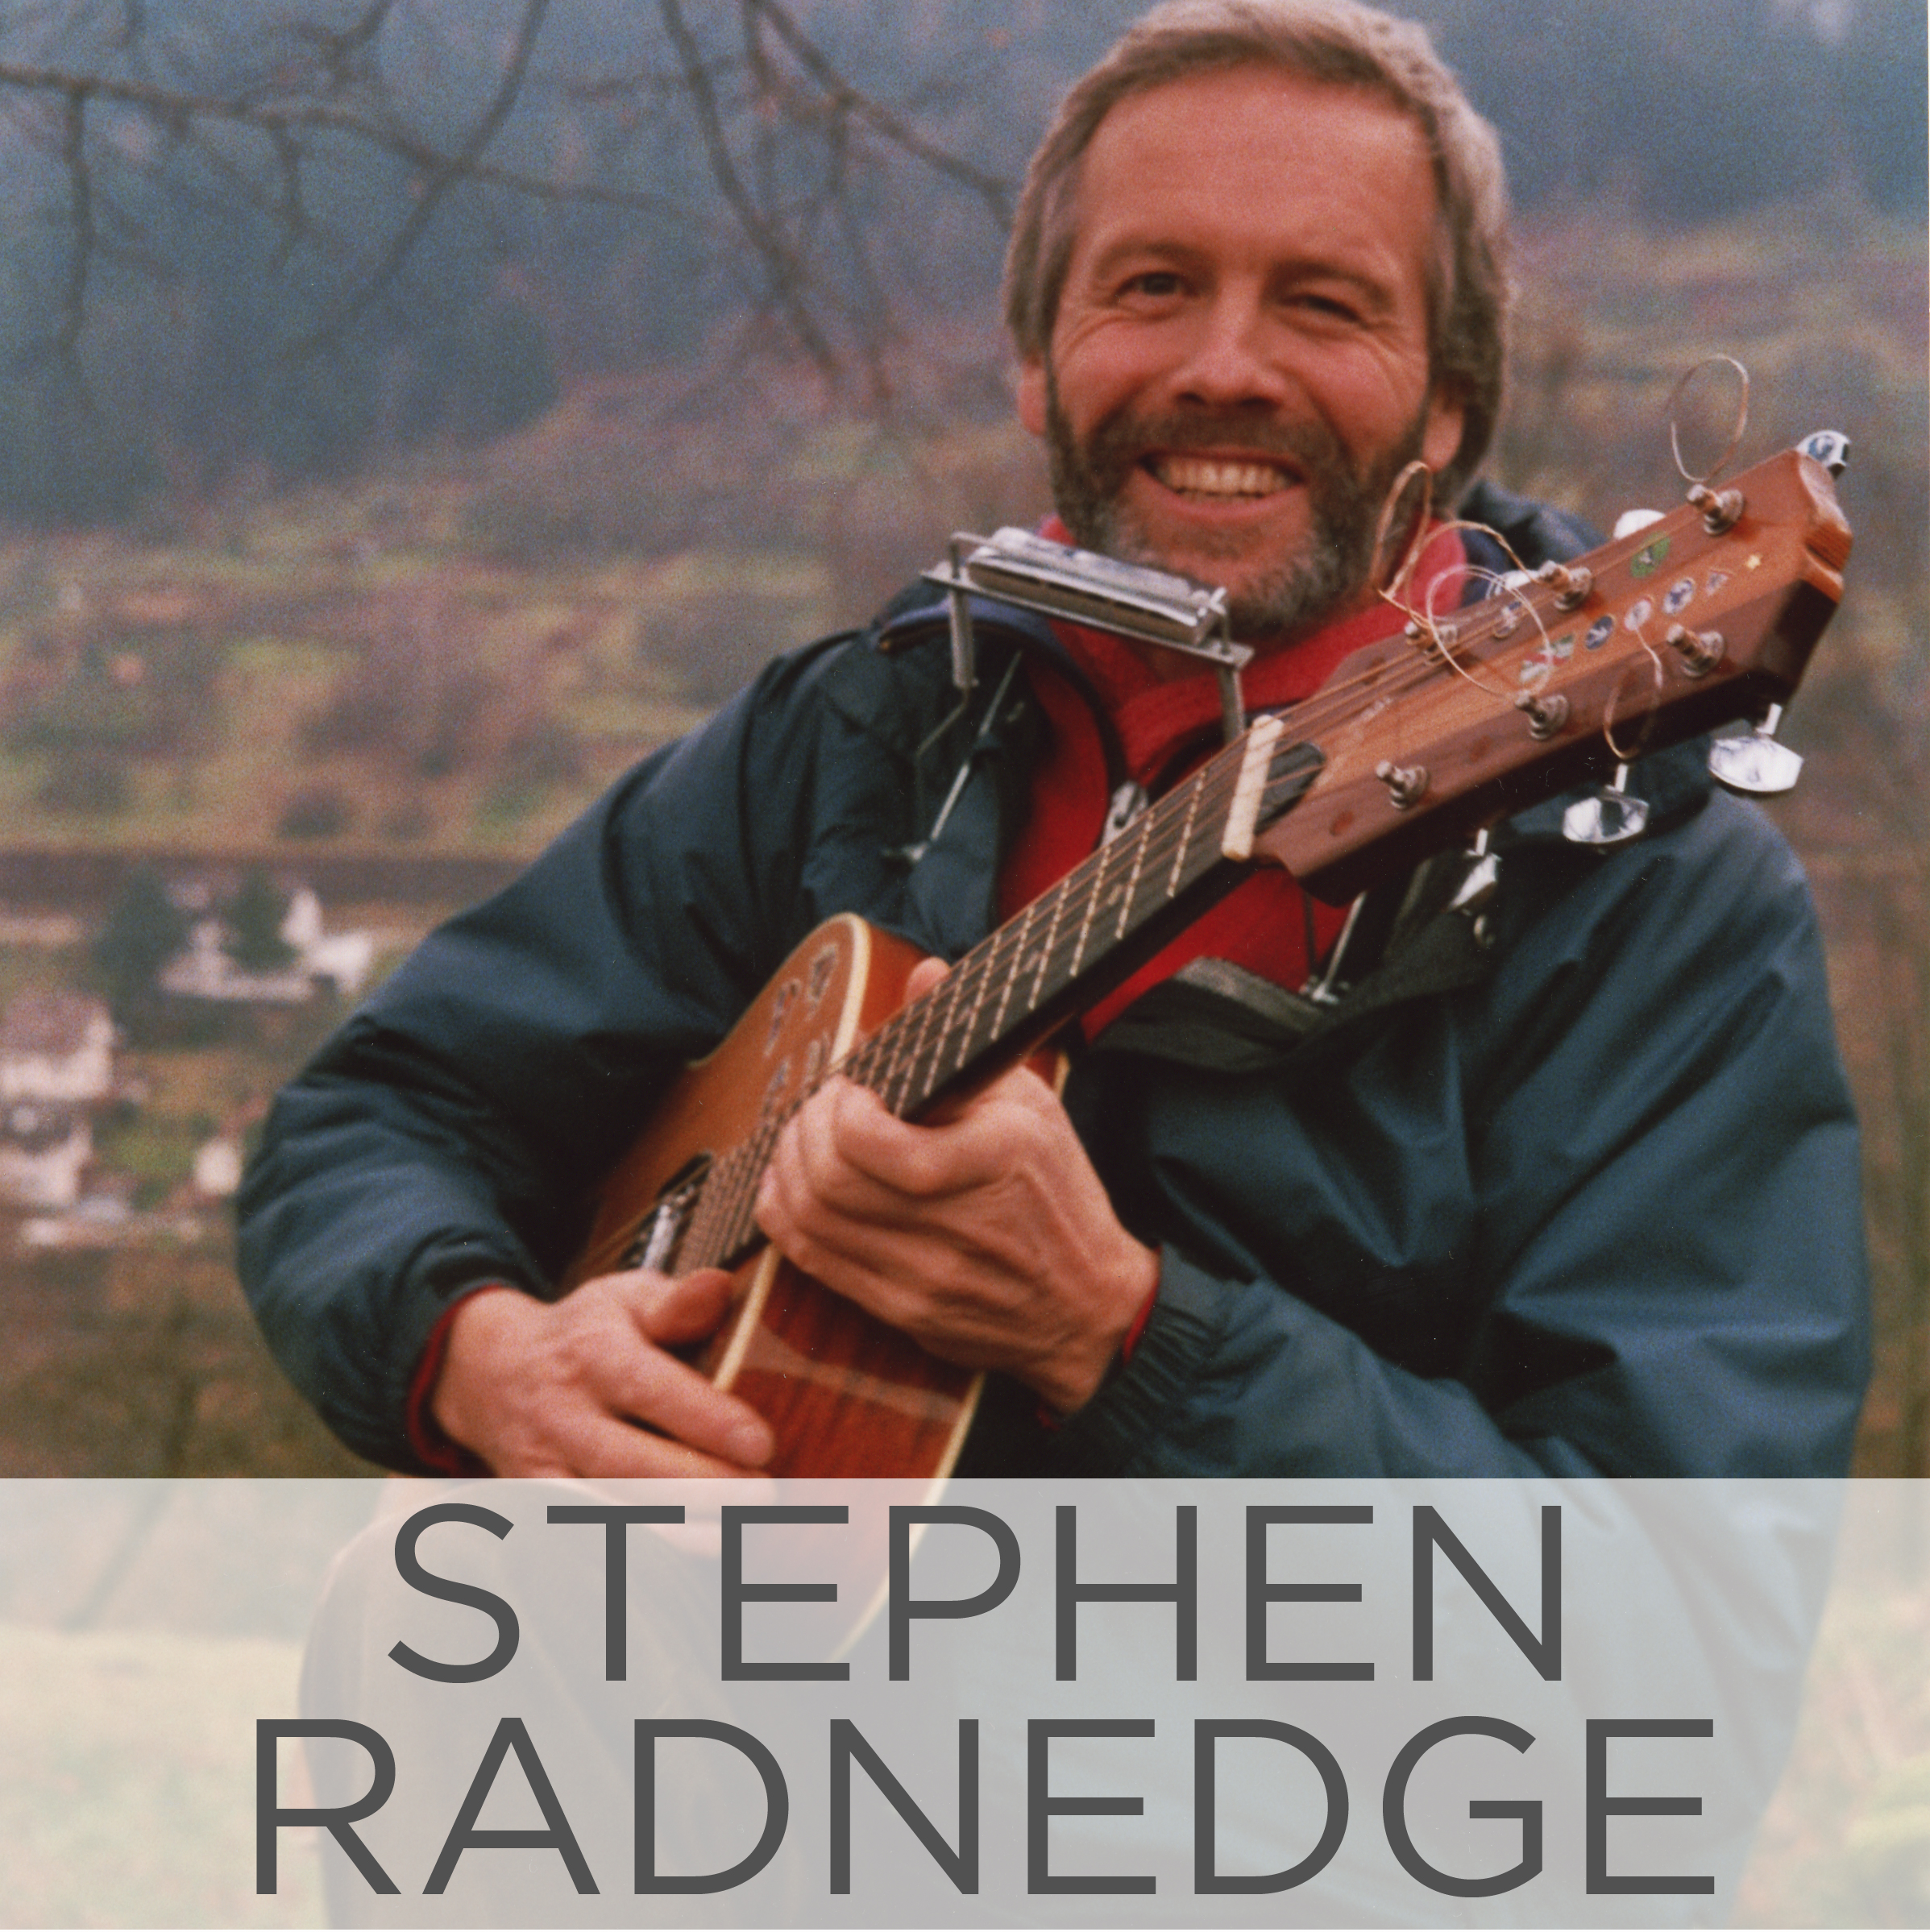 Stephen Radnedge